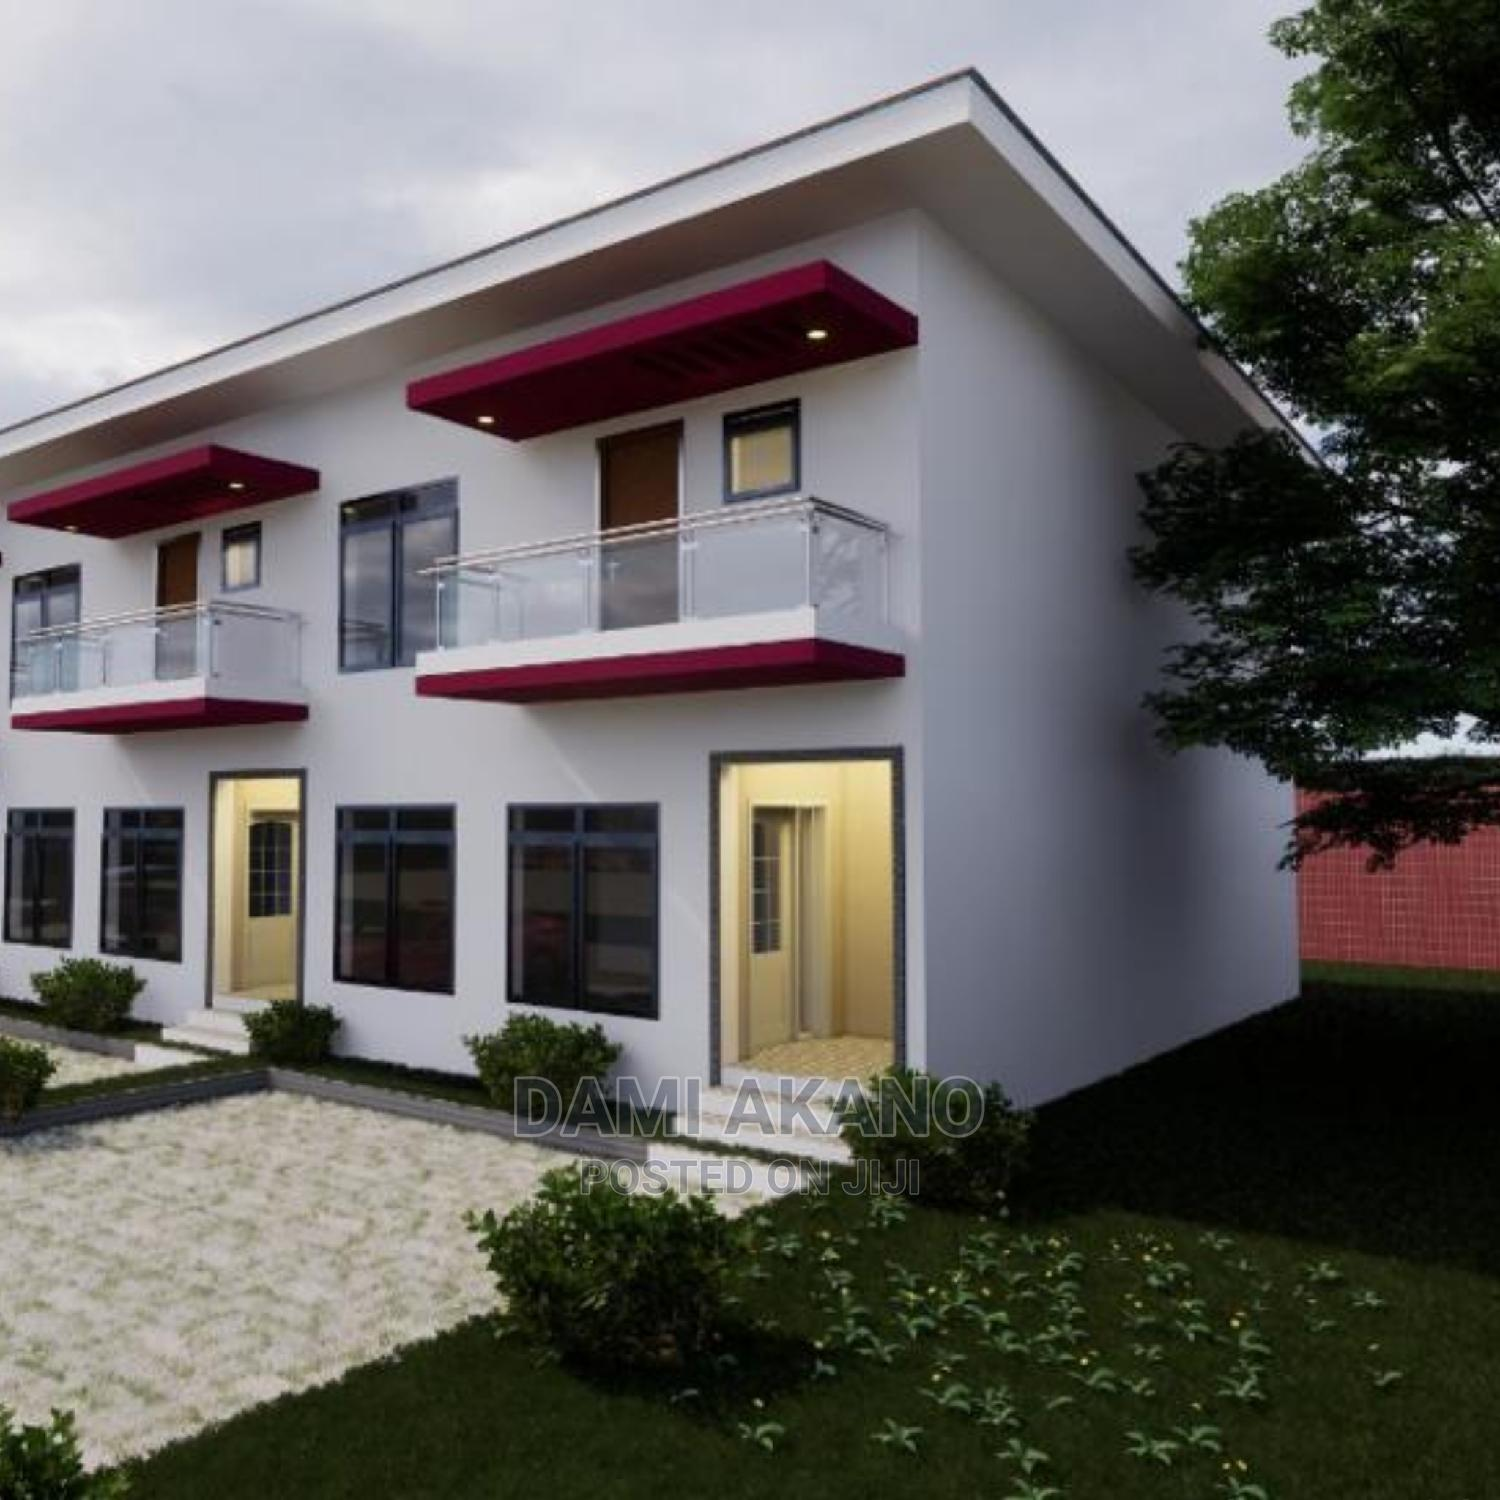 3bdrm Duplex in Life Camp for Sale   Houses & Apartments For Sale for sale in Life Camp, Gwarinpa, Nigeria